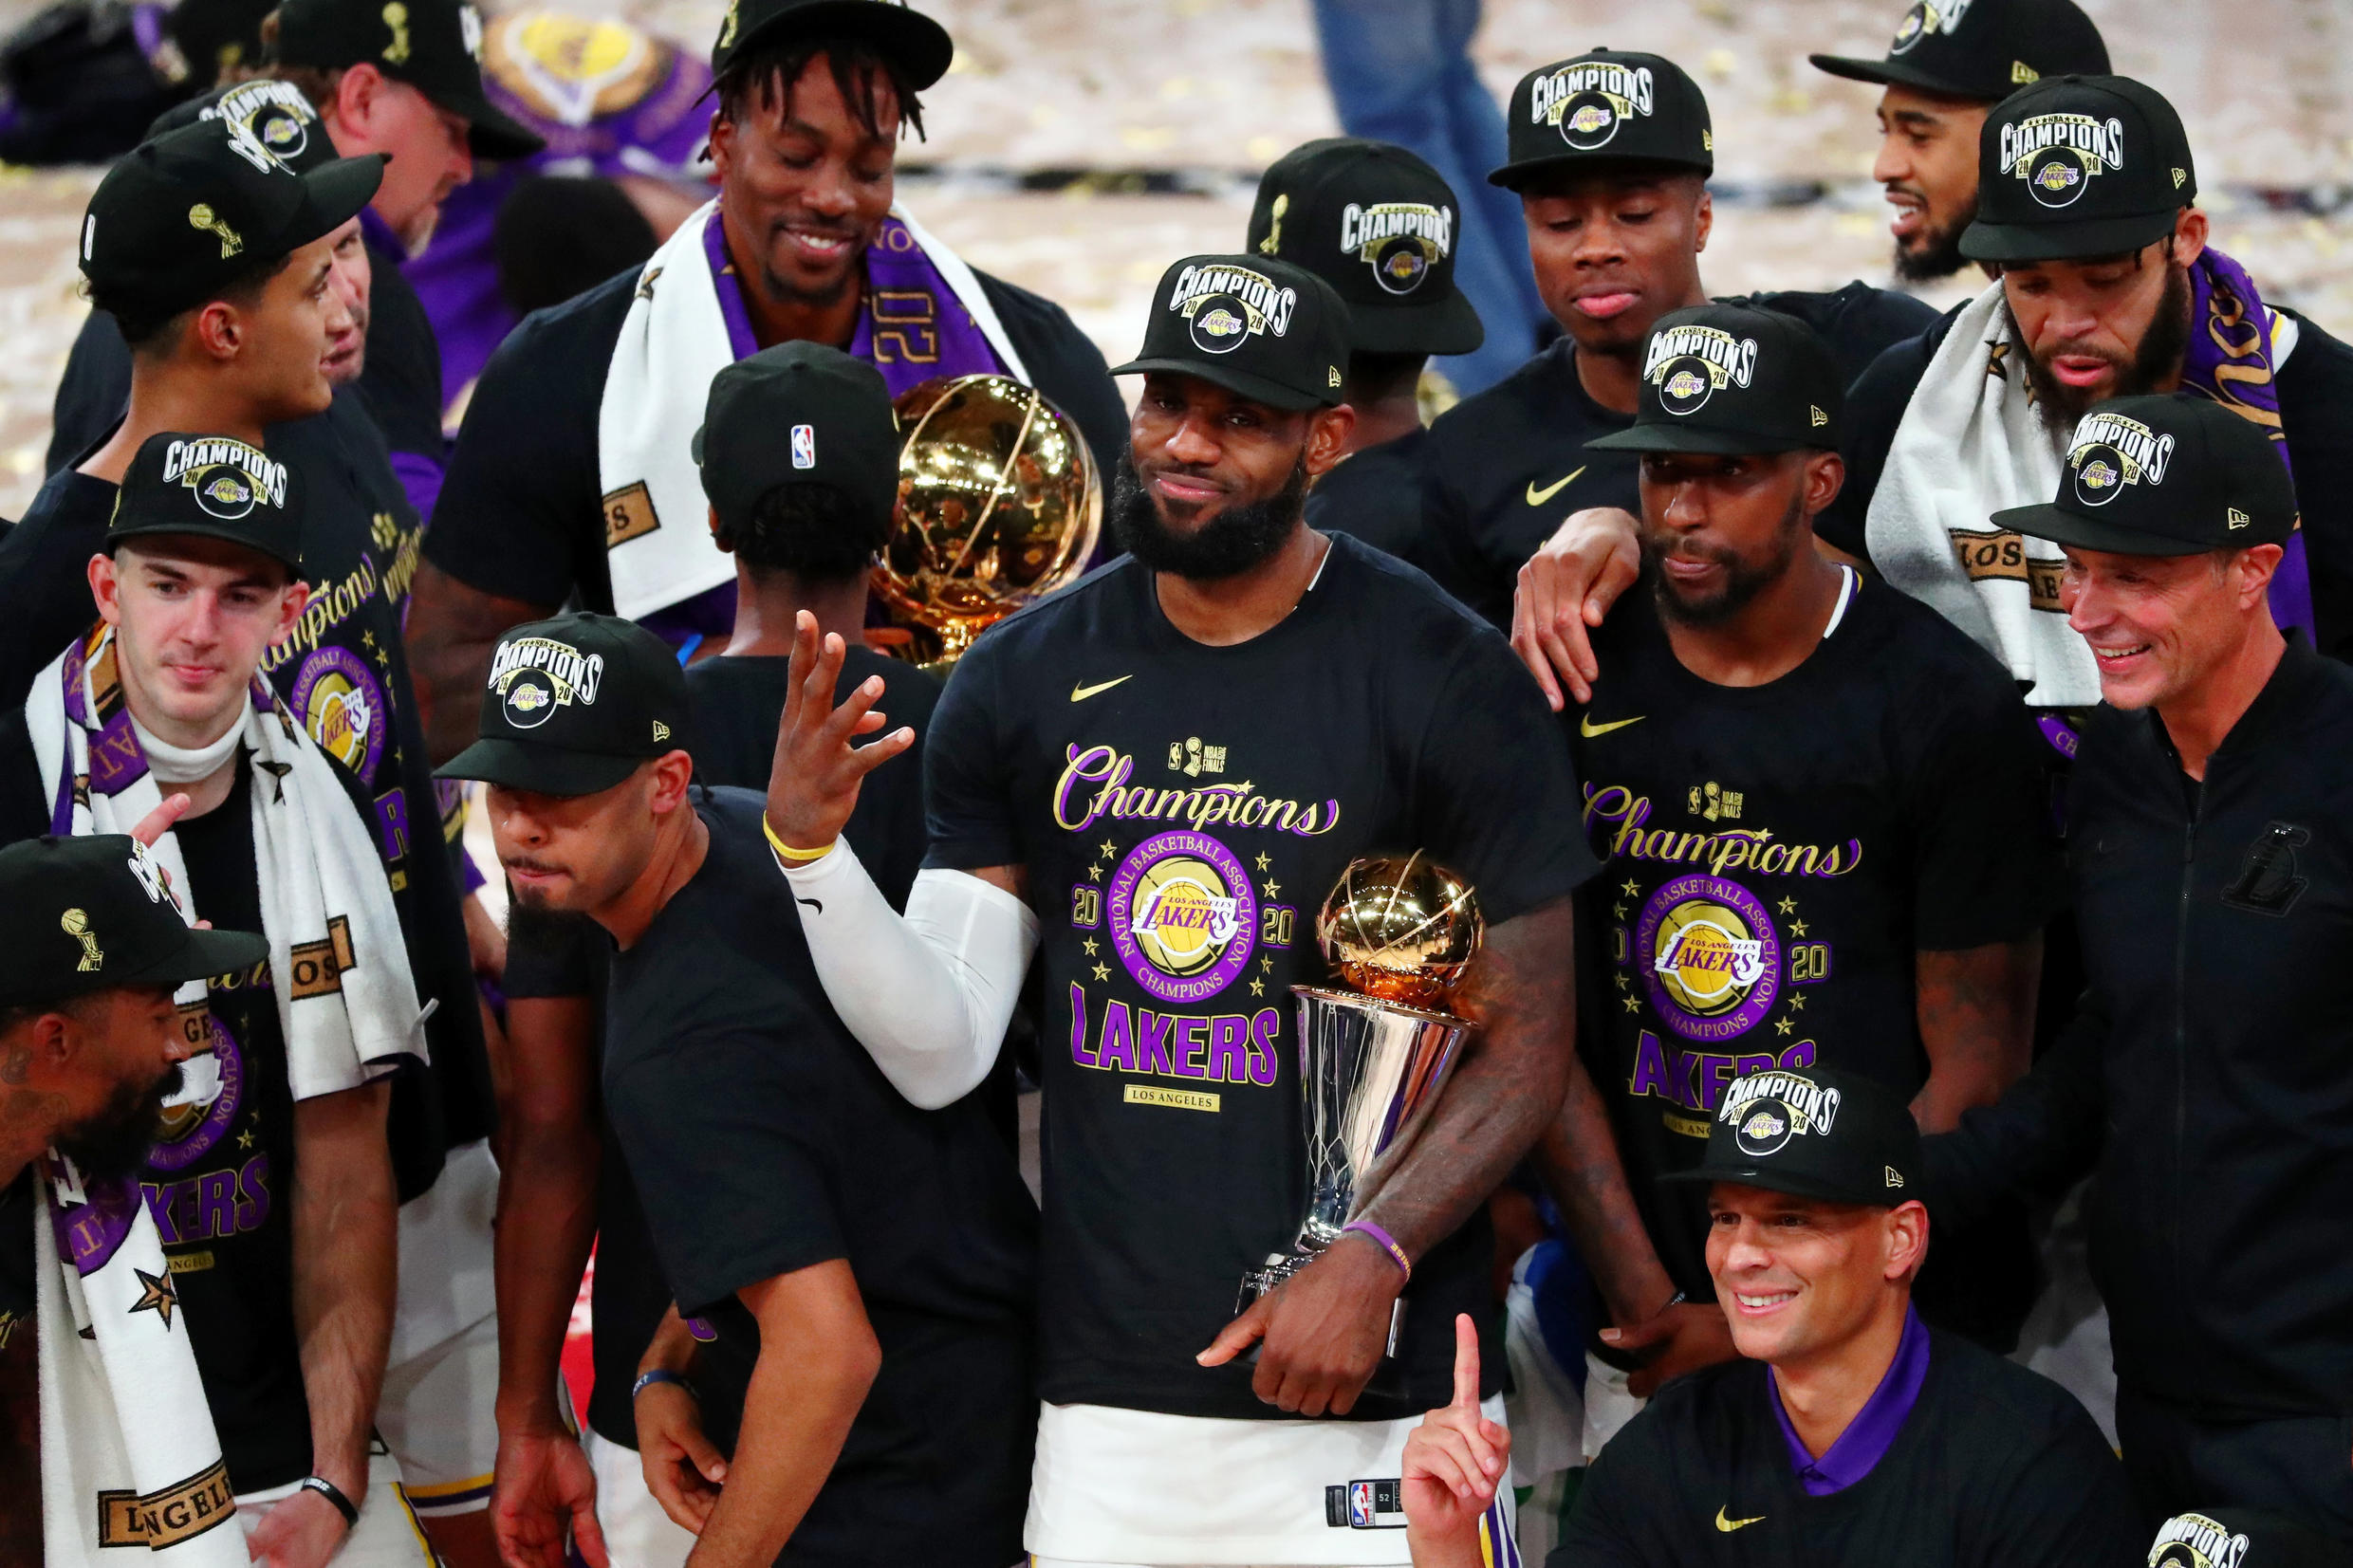 2020-10-12T031510Z_120330556_NOCID_RTRMADP_3_NBA-FINALS-LOS-ANGELES-LAKERS-AT-MIAMI-HEAT